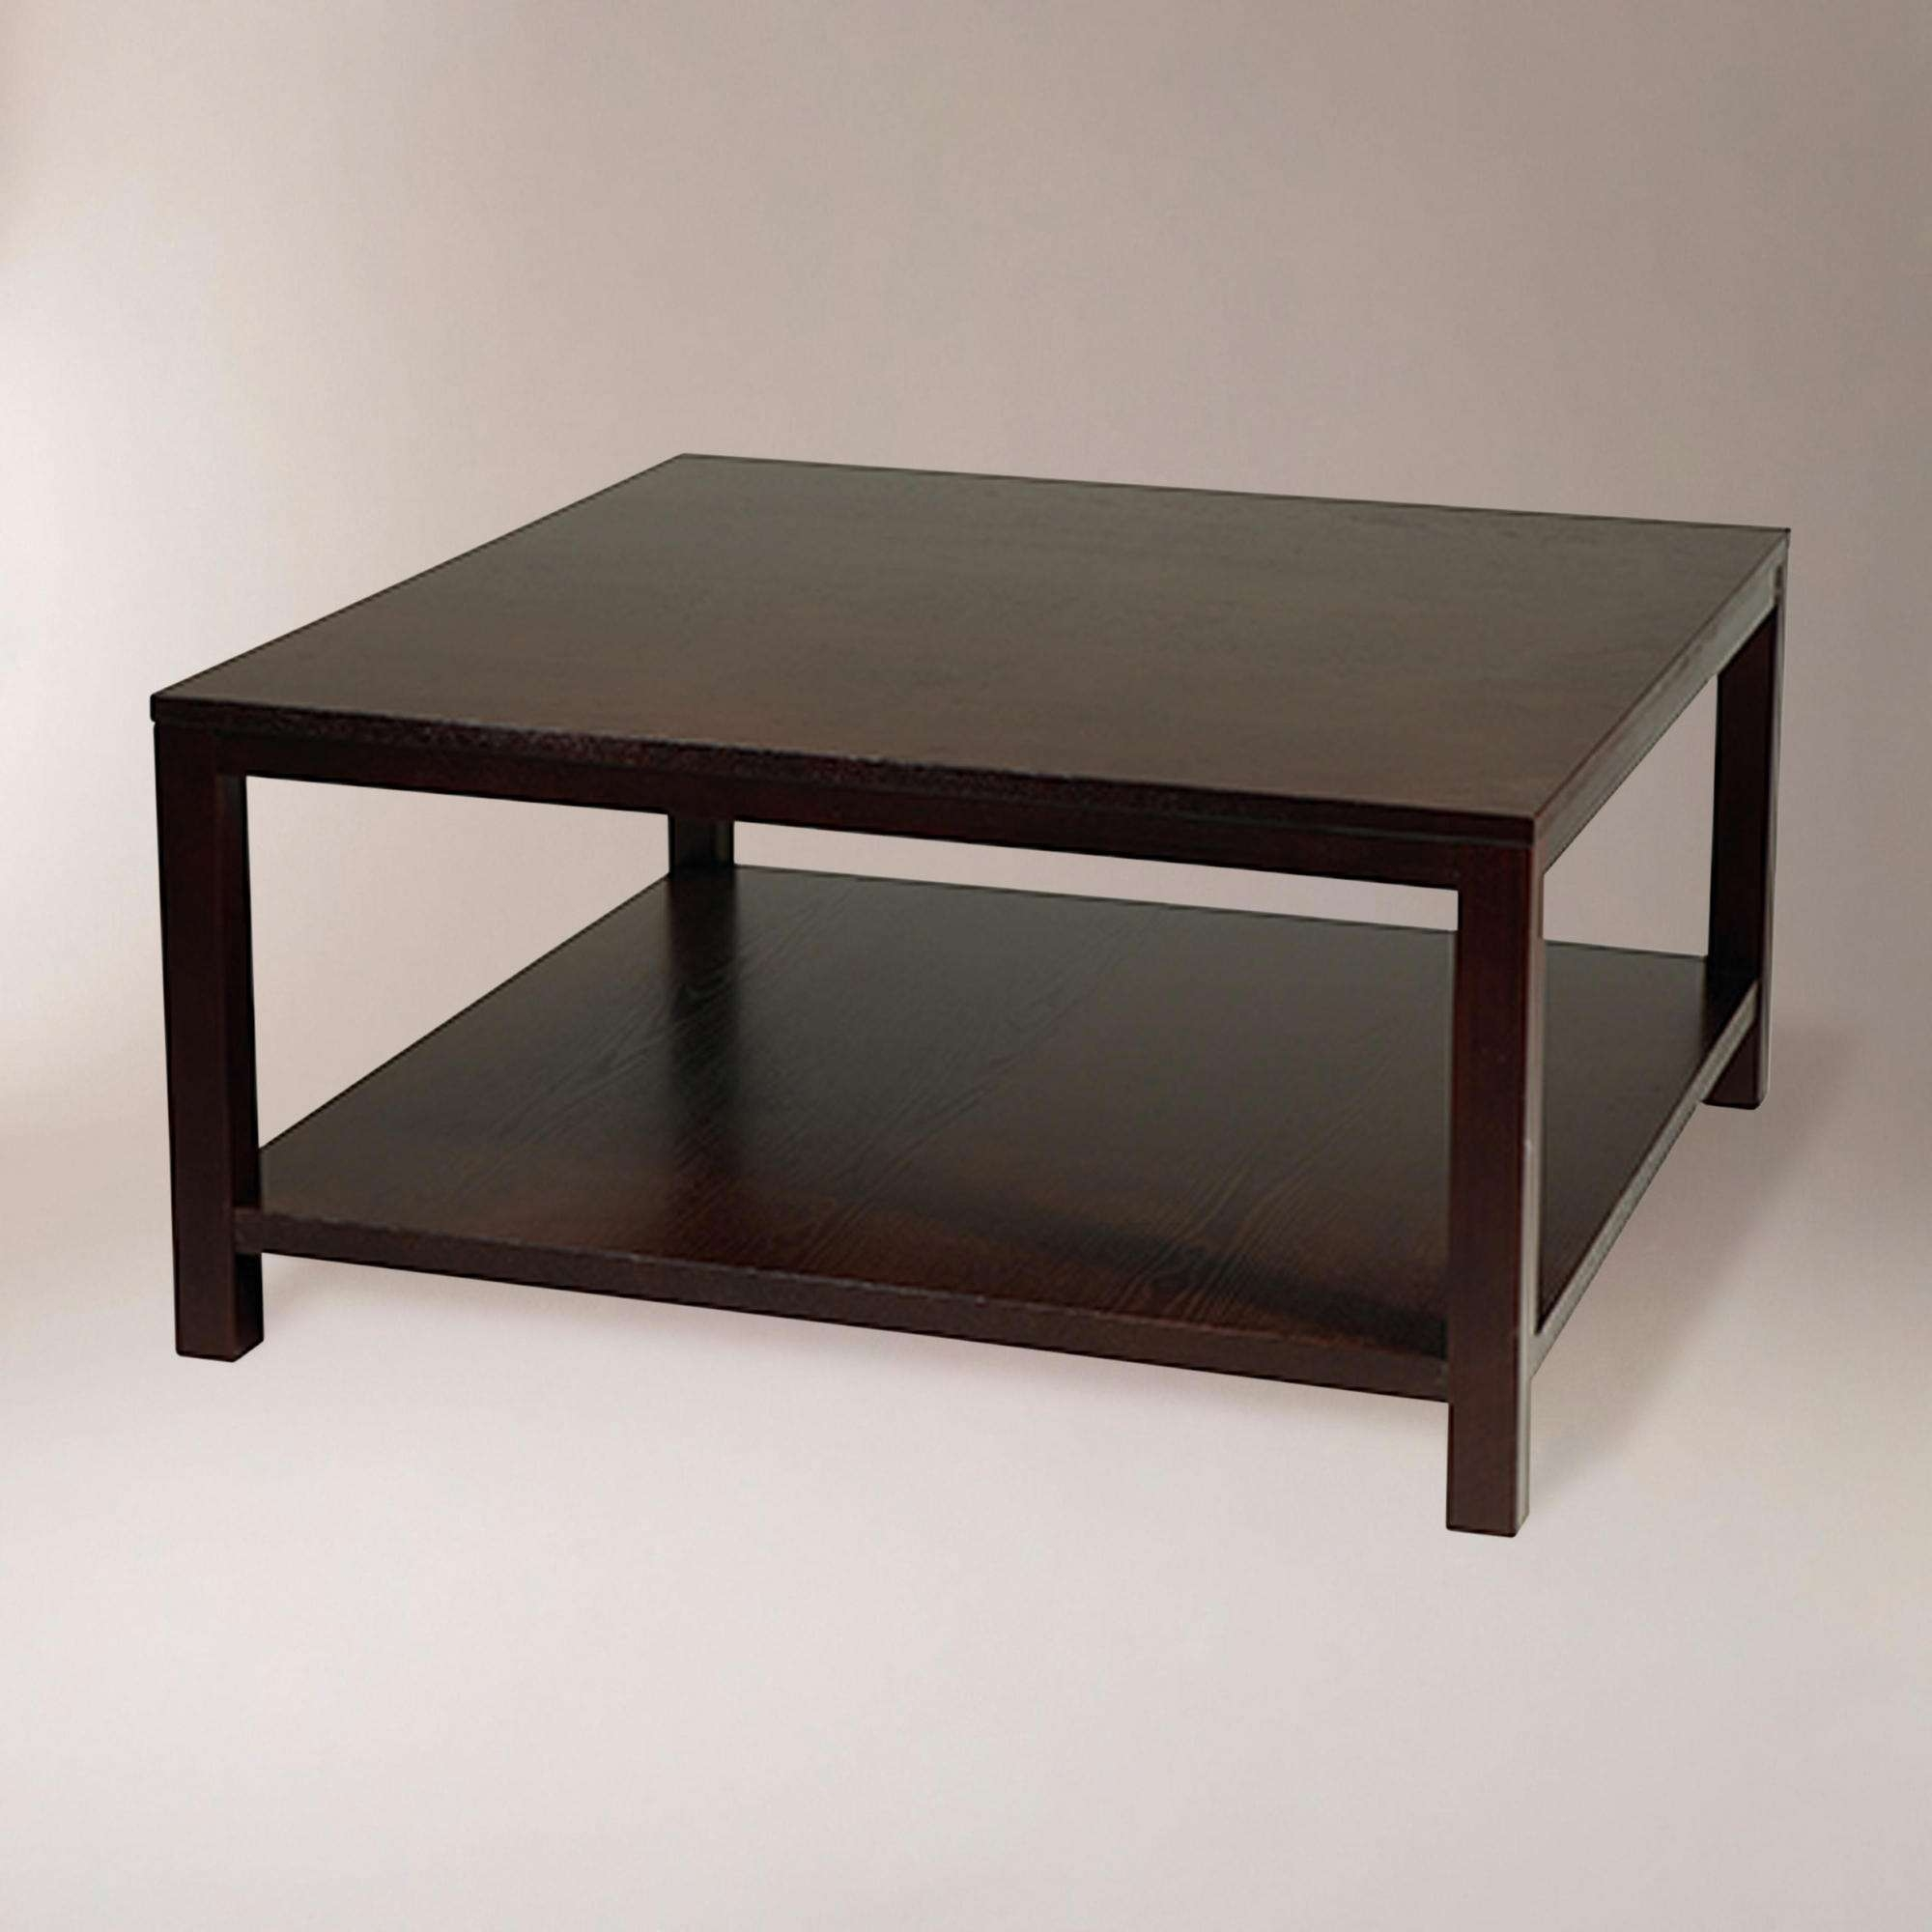 Fashionable Square Coffee Tables Pertaining To Coffee Table : Wonderful Silver Coffee Table Black Square Coffee (View 4 of 20)